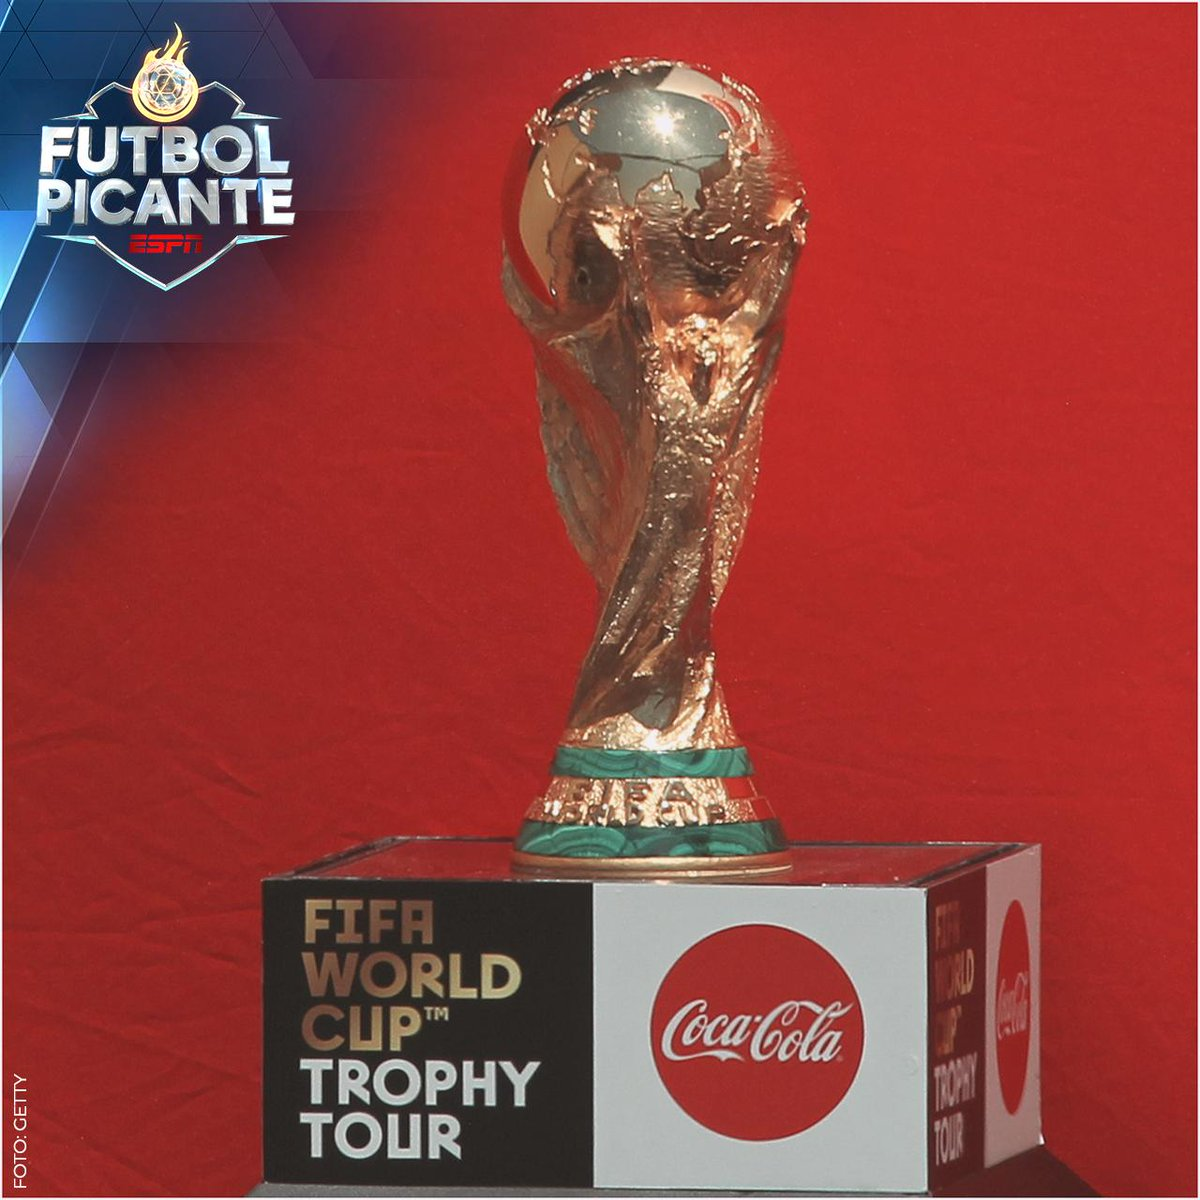 Futbol Picante's photo on Qatar 2022